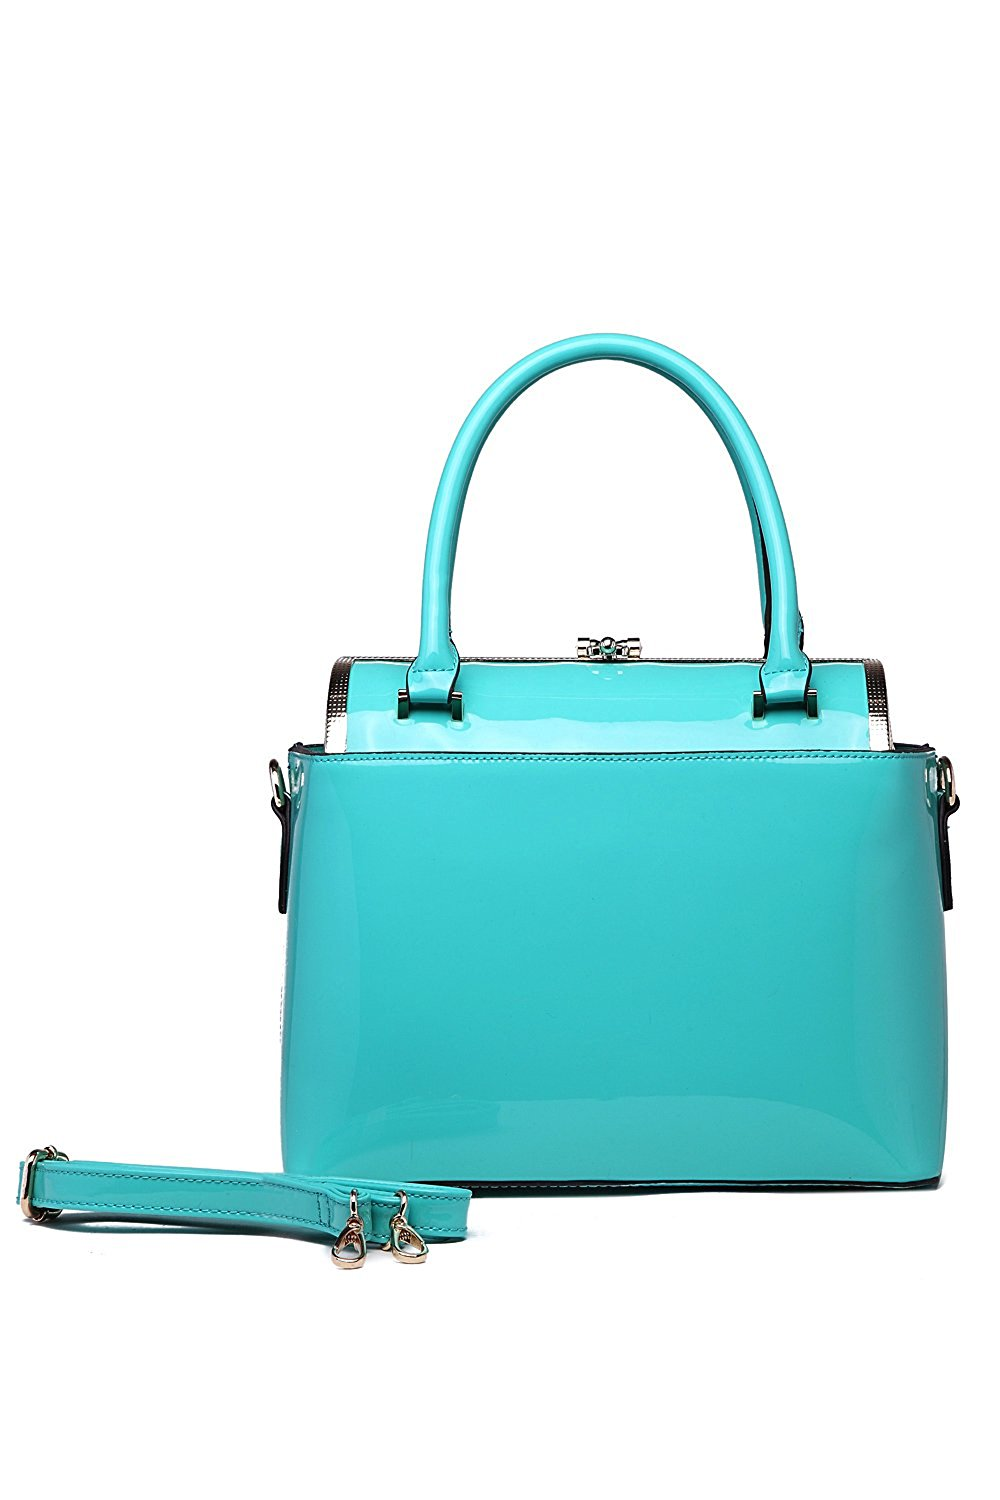 "e40fedba7f38 Get Quotations · MKF Collection Fashion ""MARISOL SATCHEL"" Signature Design  Tote ~ New Fashion Women Handbag ~"